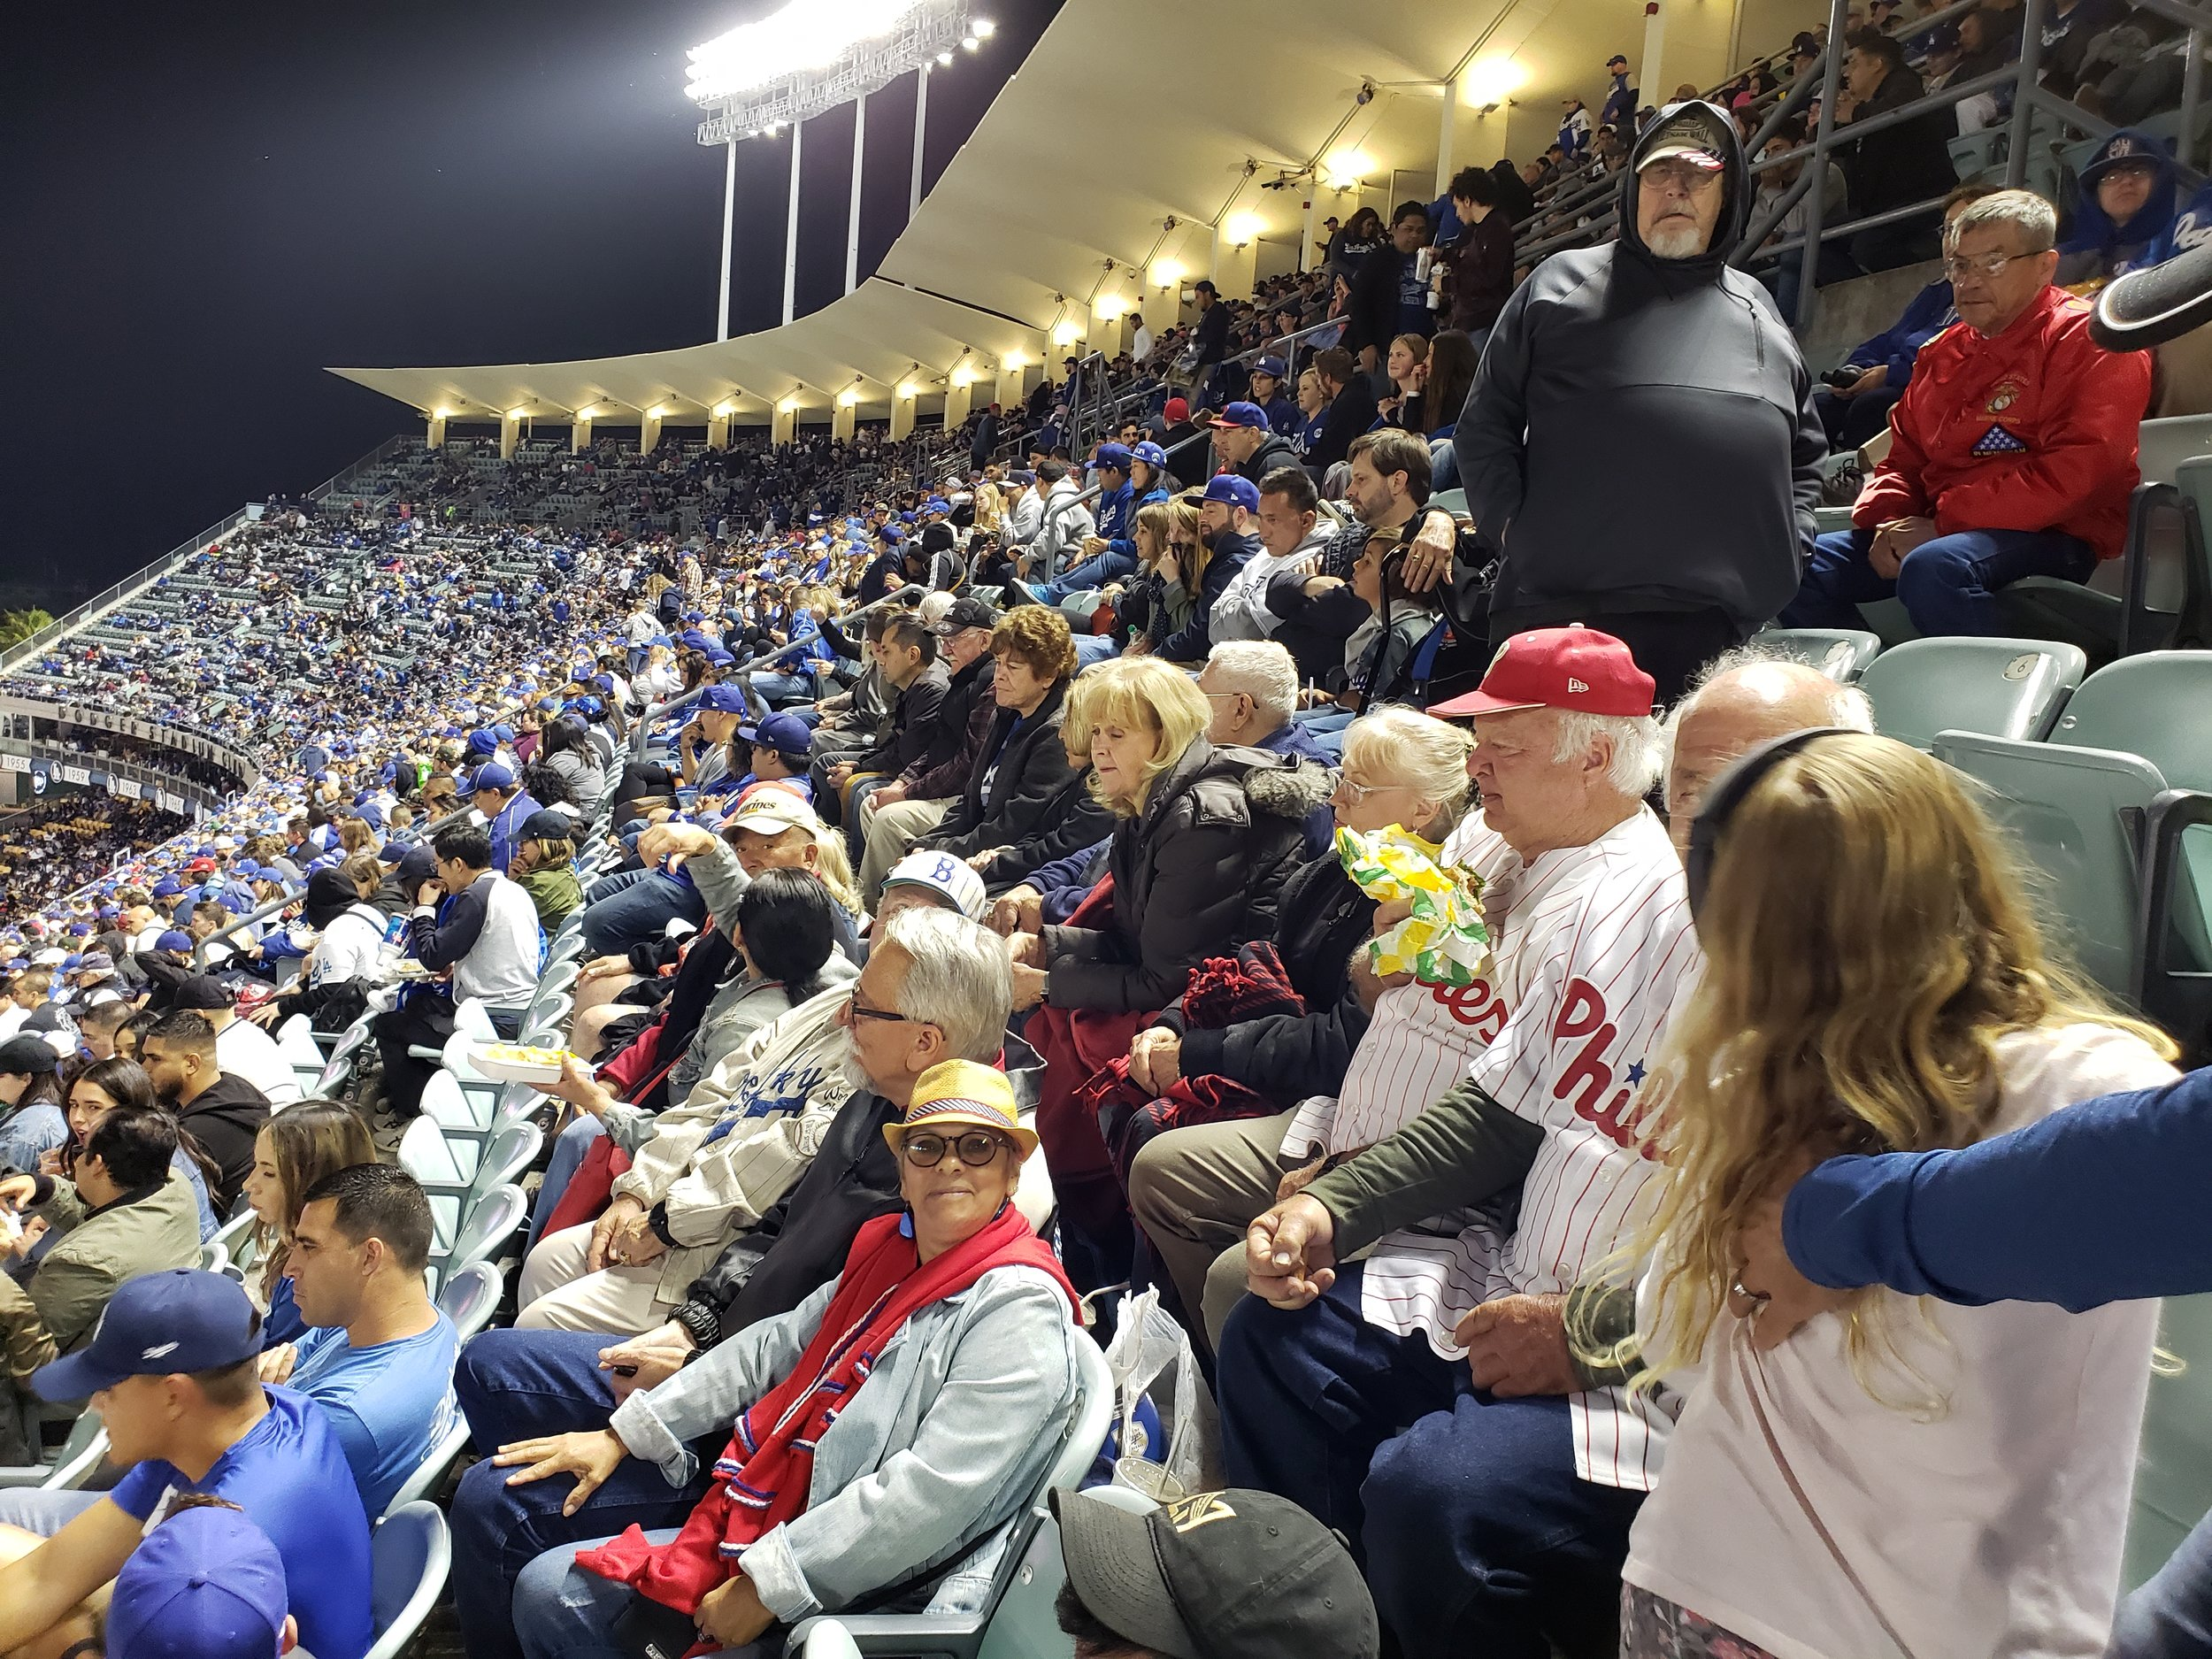 June 2, 2019   The night was beautiful at Dodger Stadium as 50 of our Detachment members and families came to together to watch the Dodgers beat the Phillies with a walk-off home run. A wonderful bus ride, wonderful game and the comradery was especially fantastic.